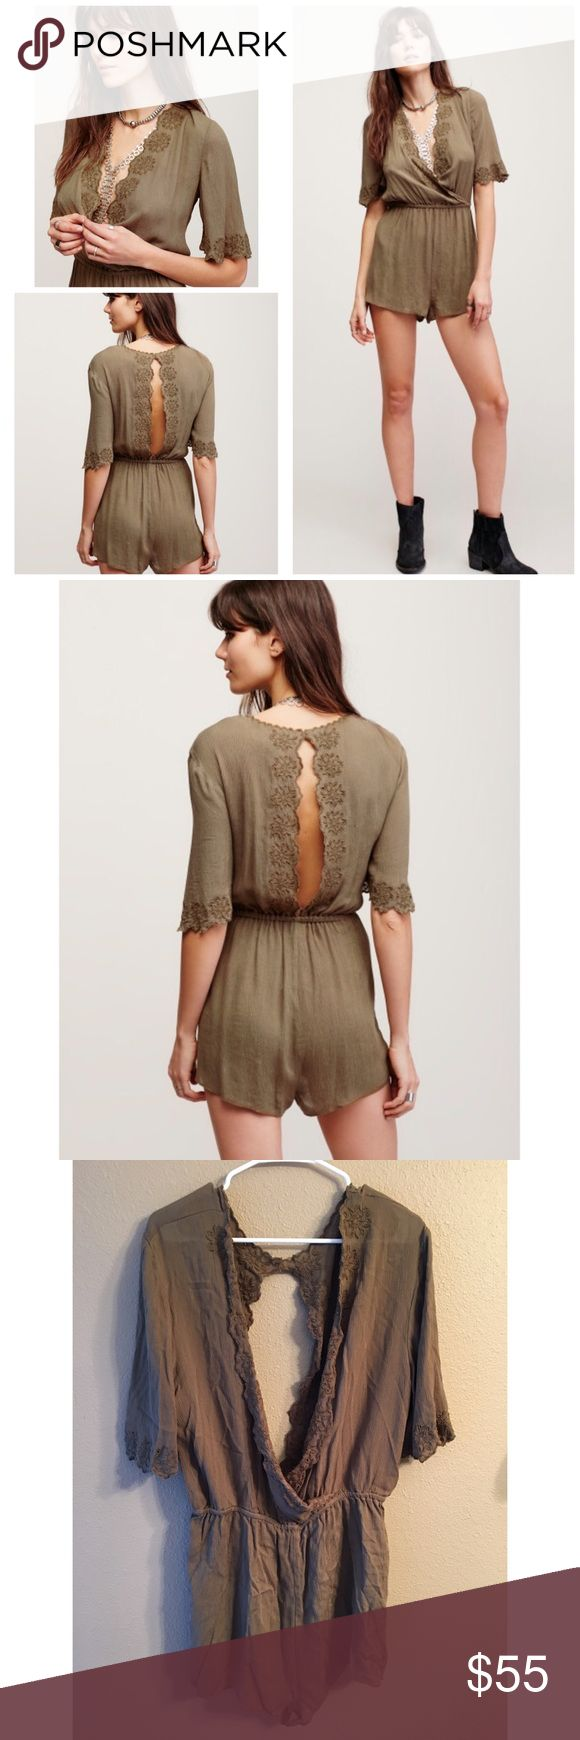 Zelma embroidered romper Pretty Moss color crinkly fabric romper. This lightweight romper features a plunging surplice V-neckline with tonal embroidery detailing and a scalloped trim. Elastic waistband for an easy fit. Front does not close, perfect to wear a bralette or bandeau under for a stylish accent! ✌🏻️  100% Rayon Hand Wash Cold. New with tags.runs like a 10-12. ❌no trades Free People Pants Jumpsuits & Rompers